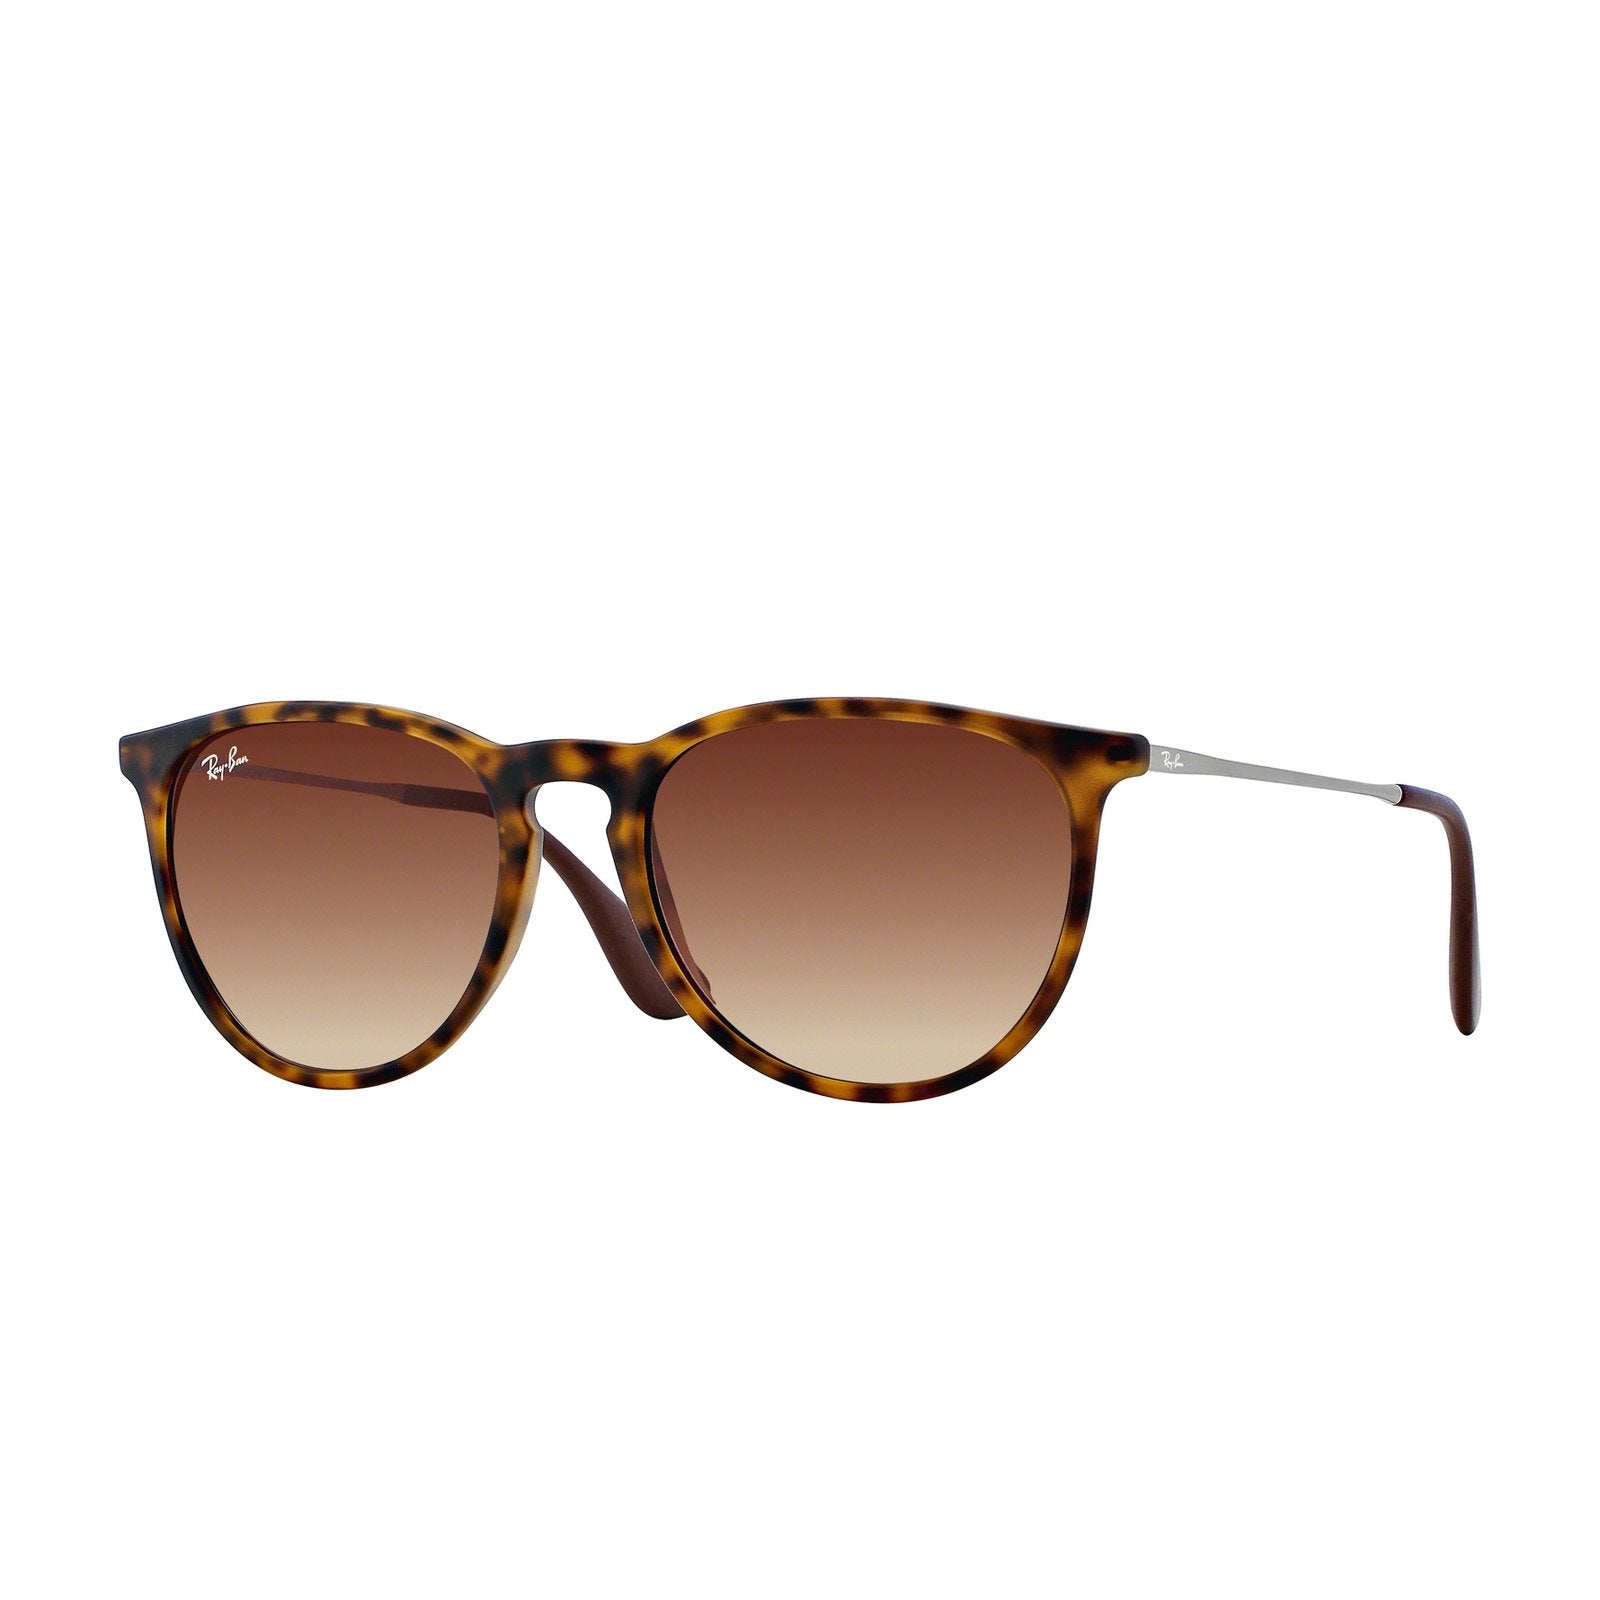 Ray-Ban RB4171 865/13 Sunglasses